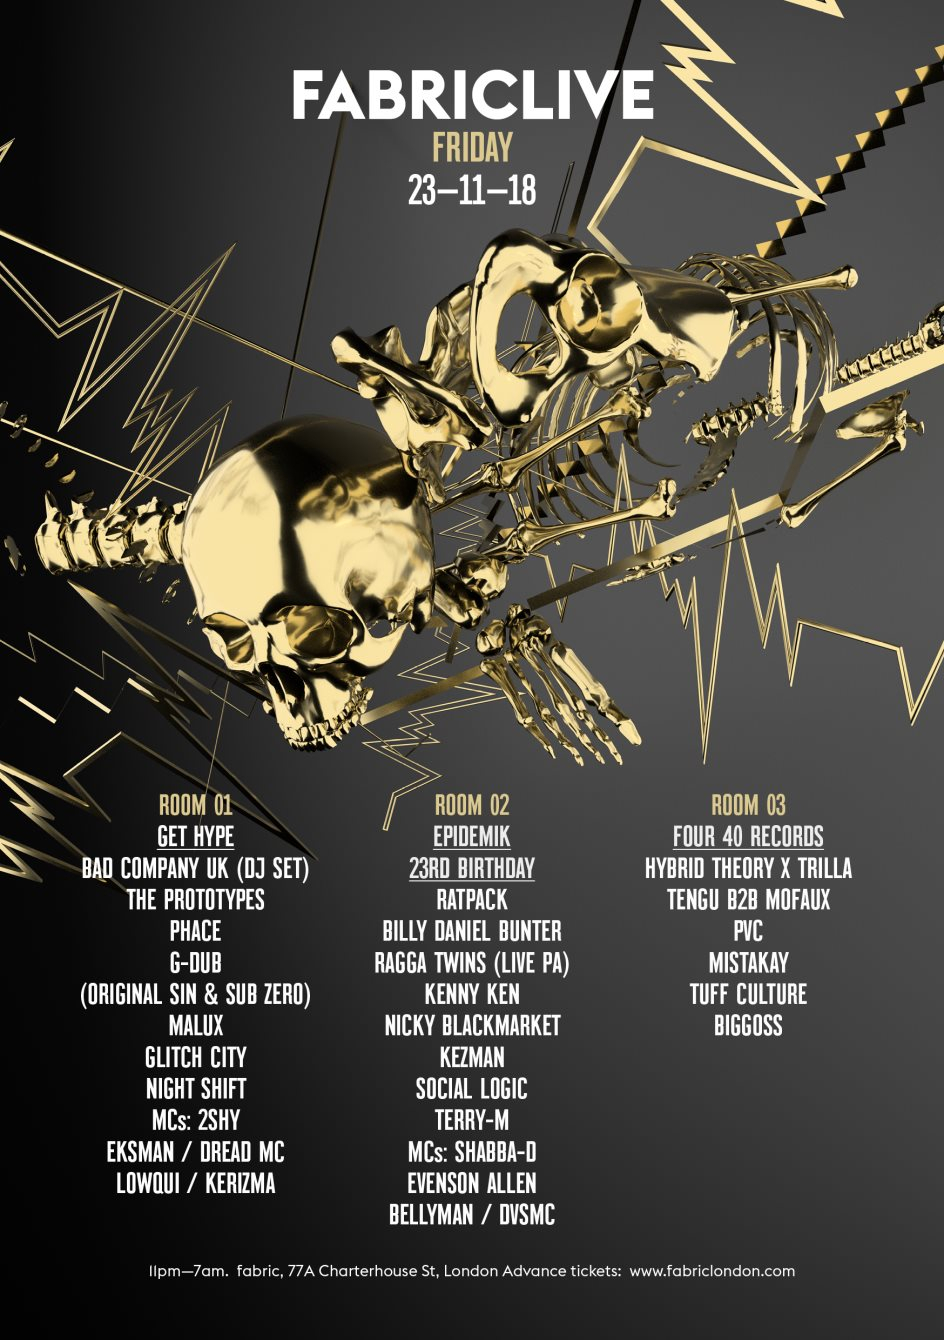 FABRICLIVE: Get Hype, Epidemik 23rd Birthday & Four 40 Records - Flyer back